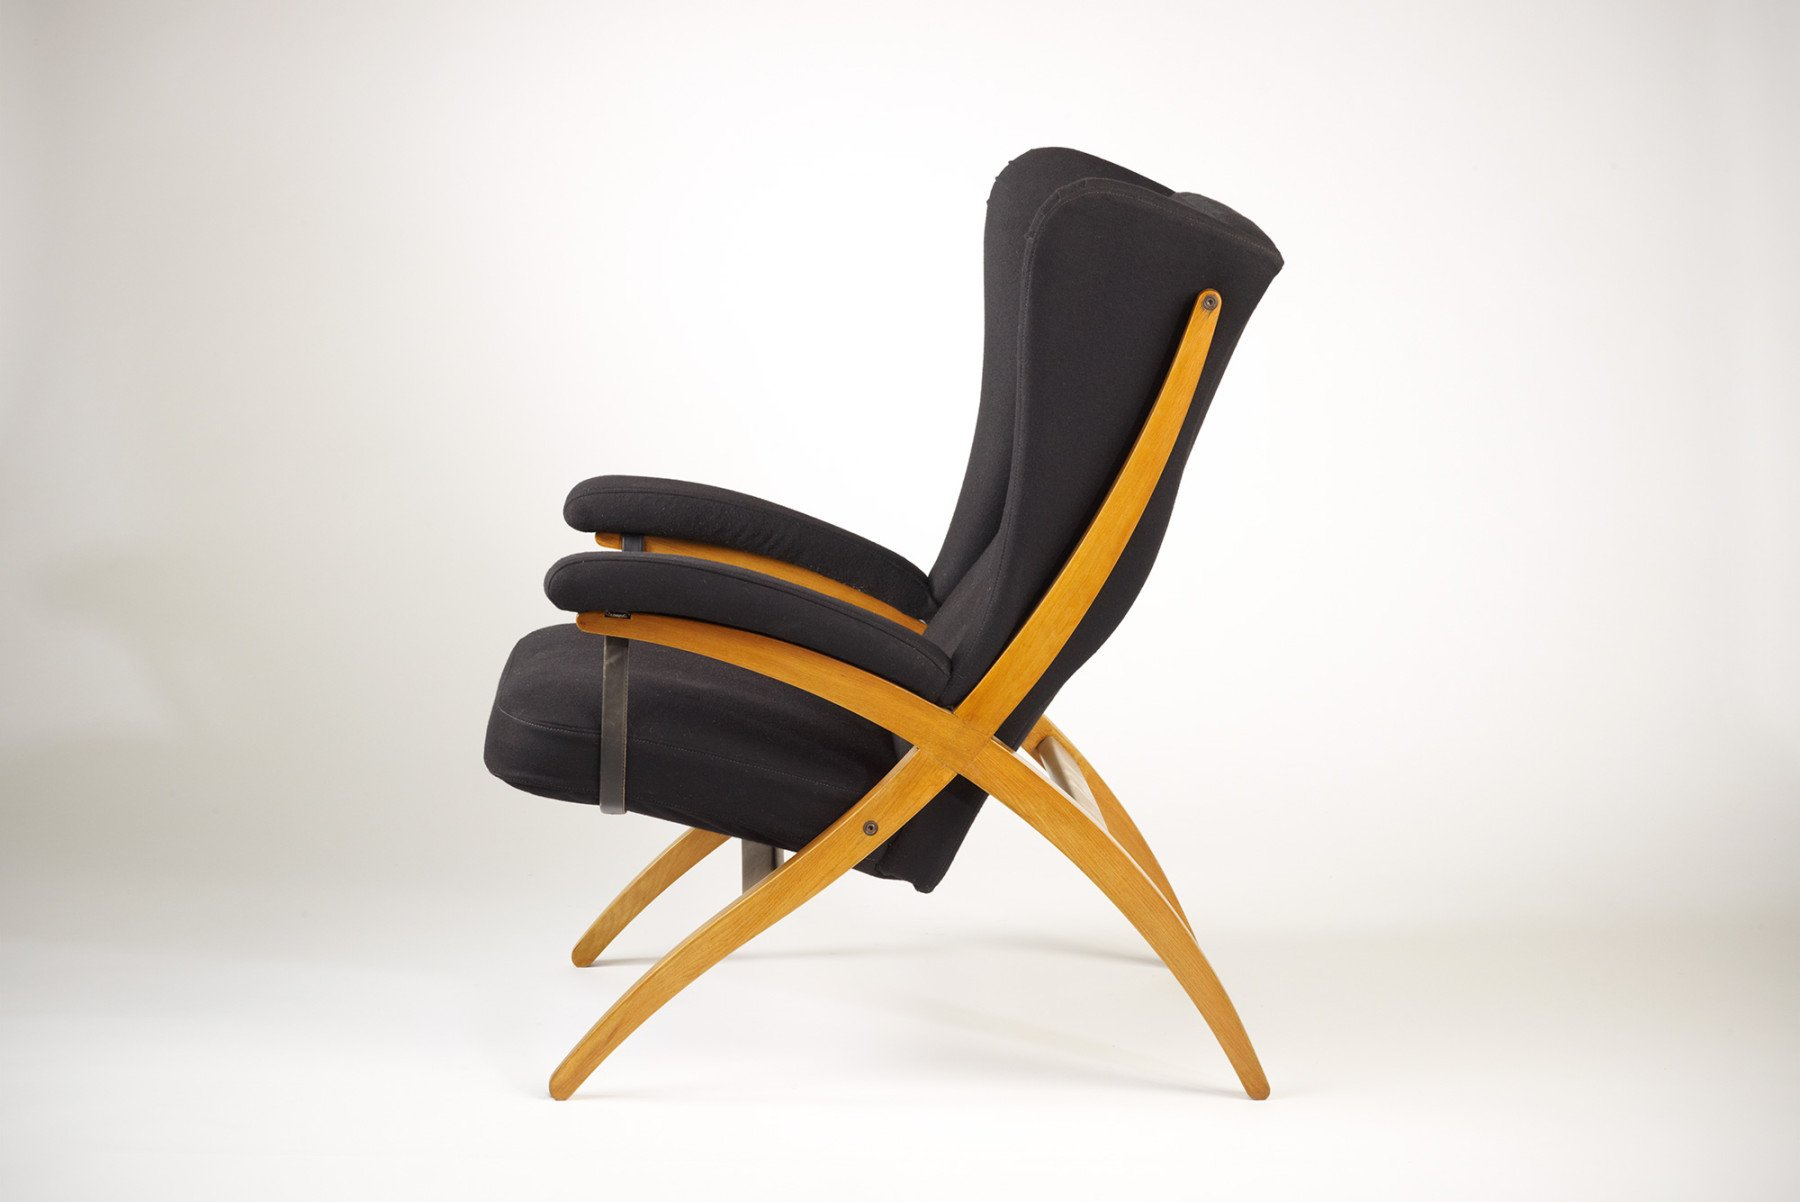 Side picture of Fiorenza chair PL44, designed by Franco Albini